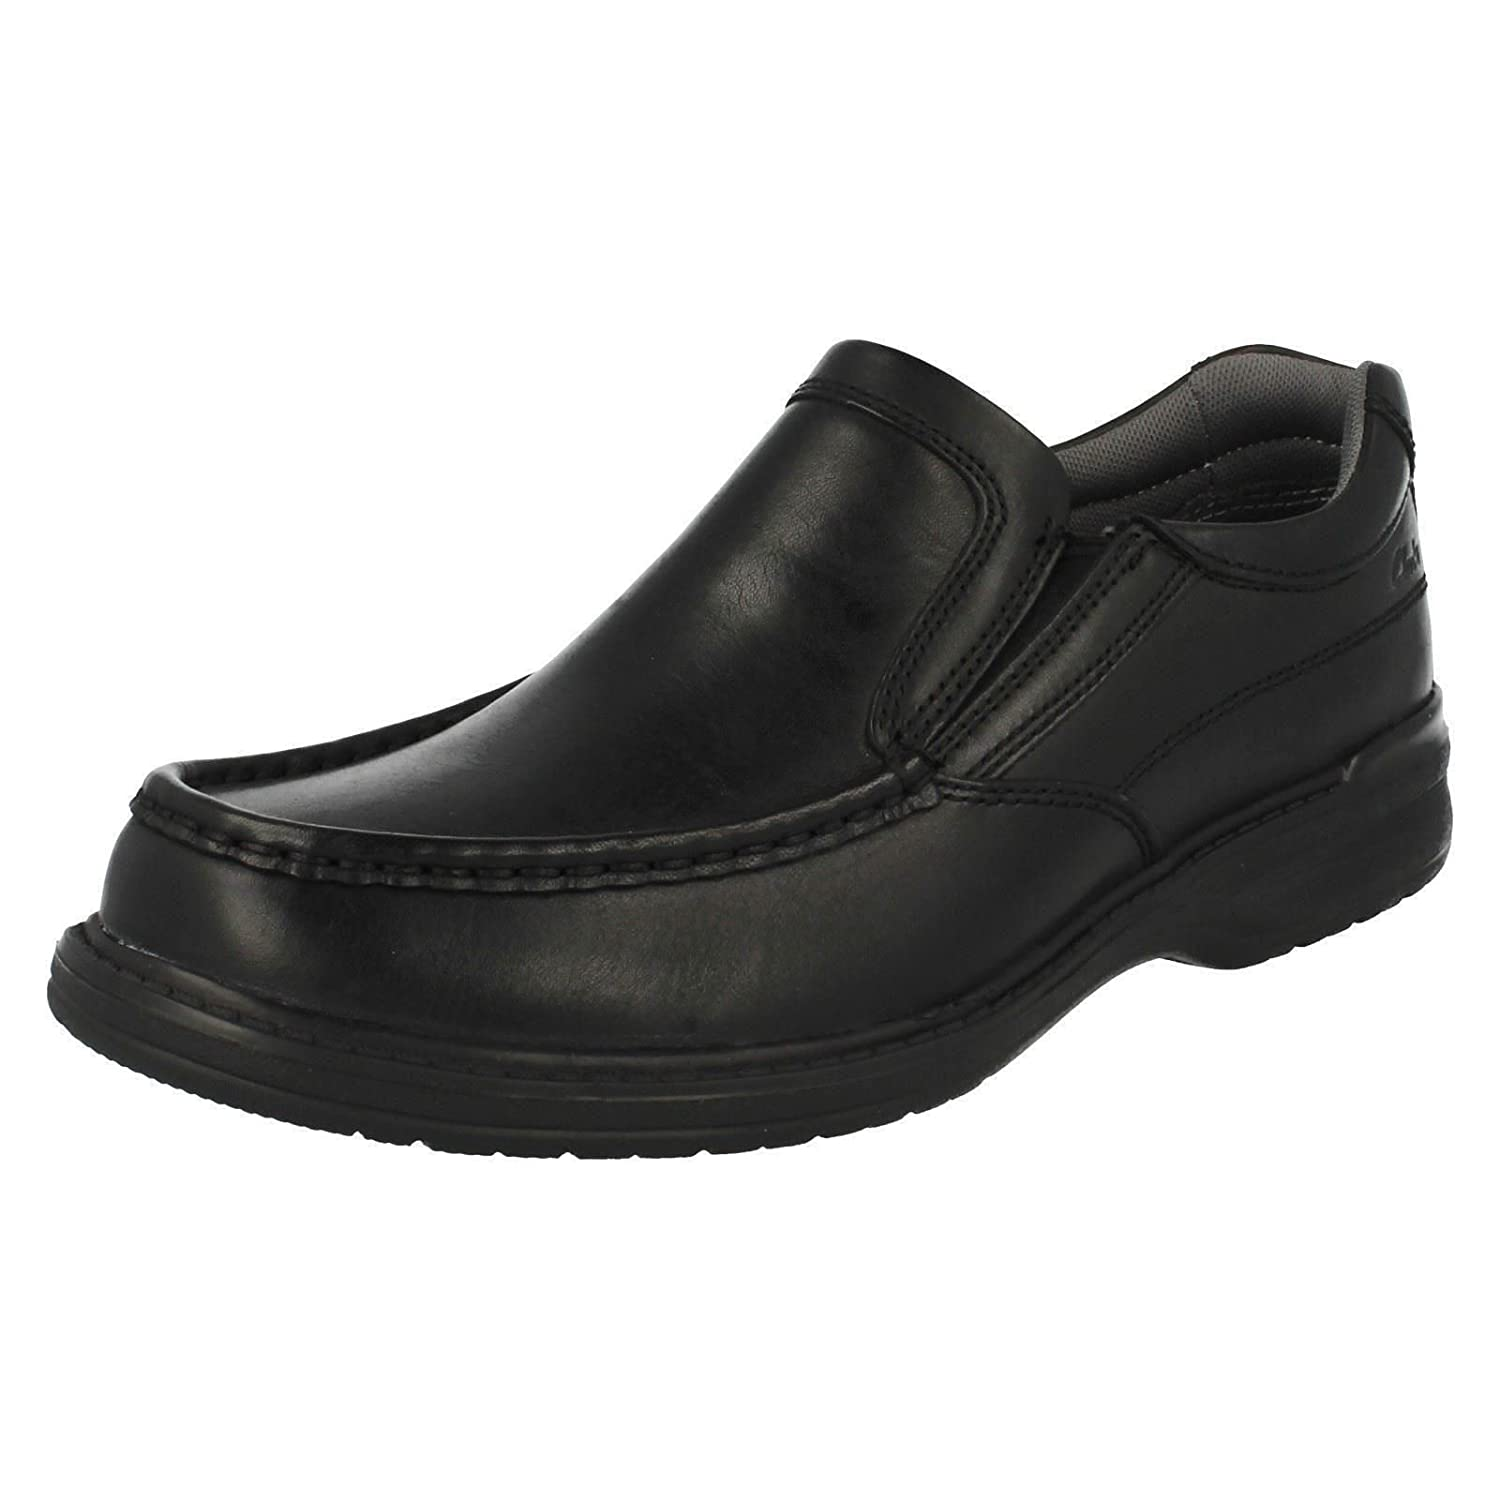 Mens Claude Aston Loafers, Black Clarks